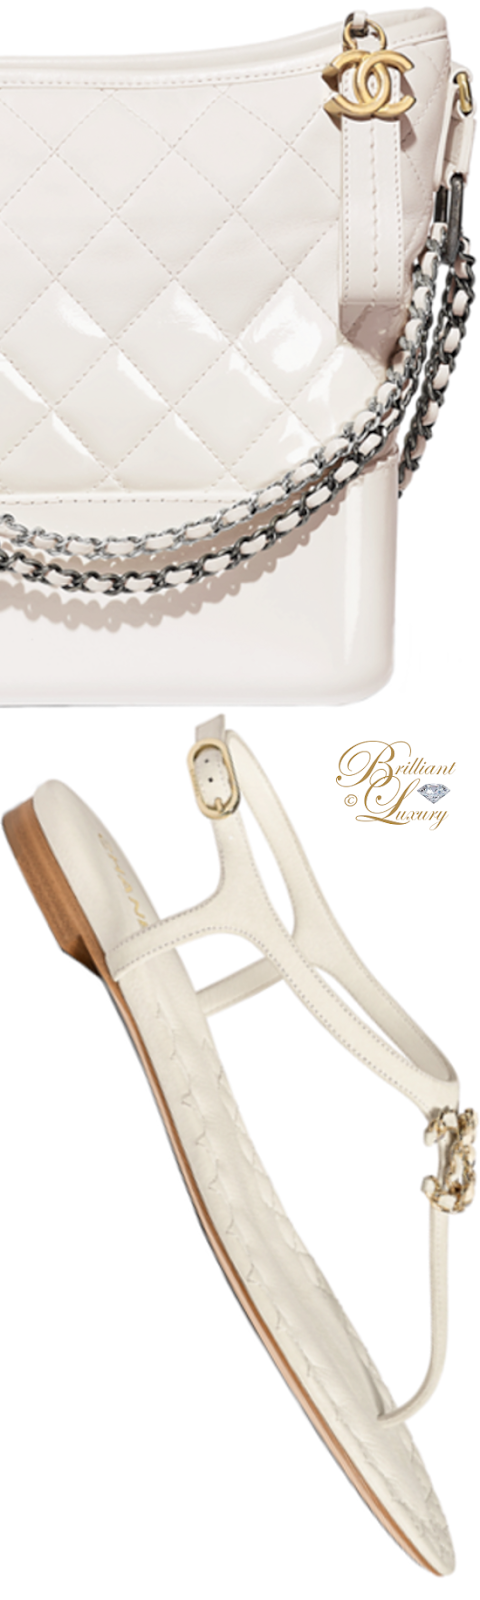 98bd1db4751 Brilliant Luxury ♢ Chanel white Gabrielle hobo bag and Chanel flat sandals